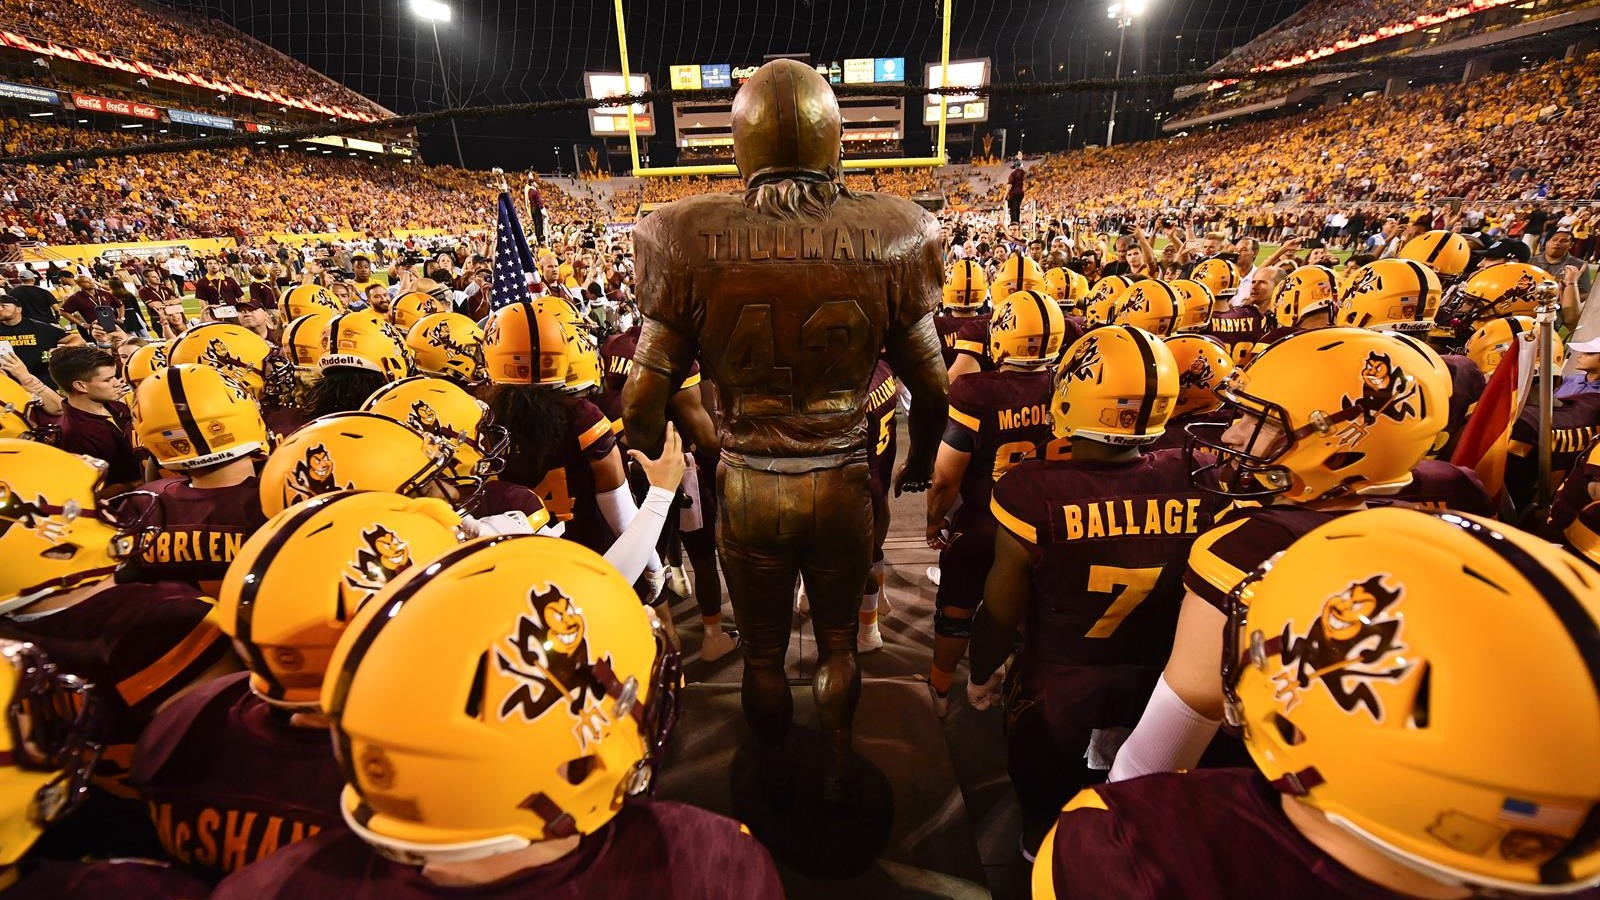 Statue before a game